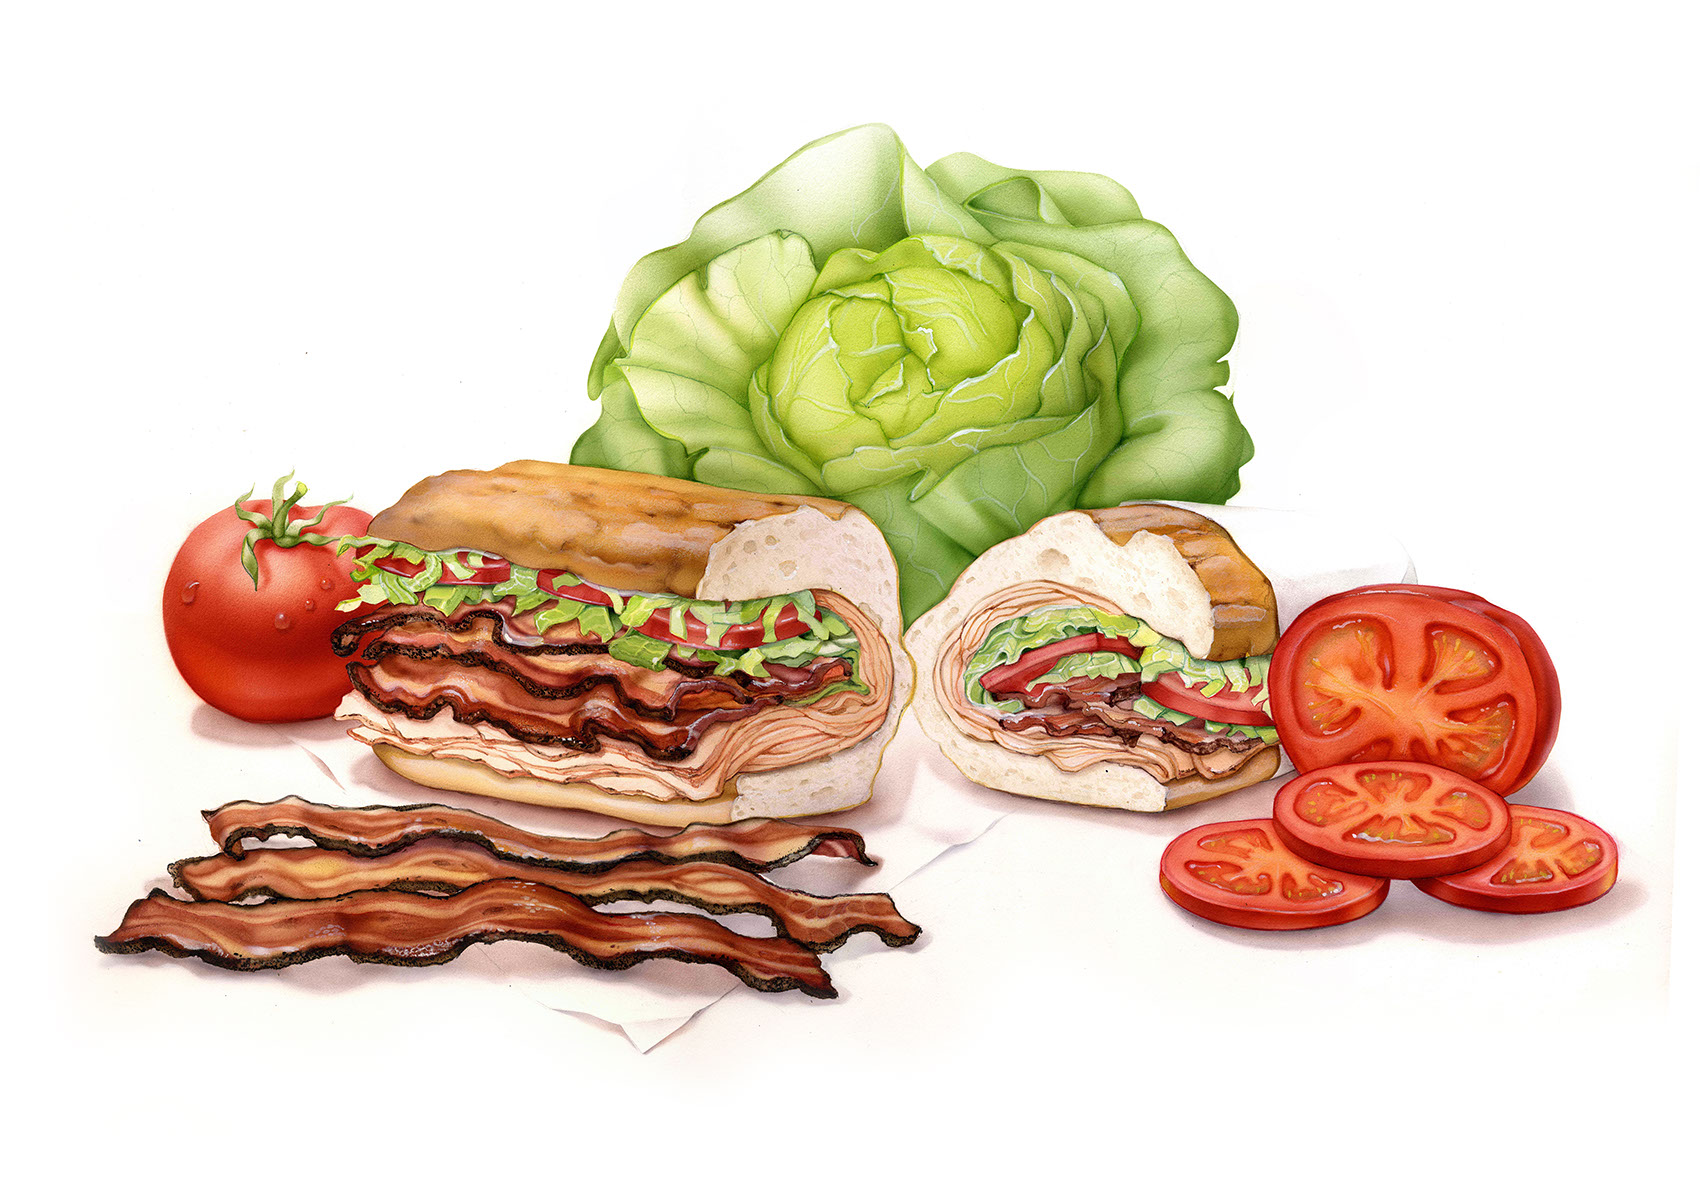 illustration-Food_Quiznos Sandwich-Bonnie Hofkin